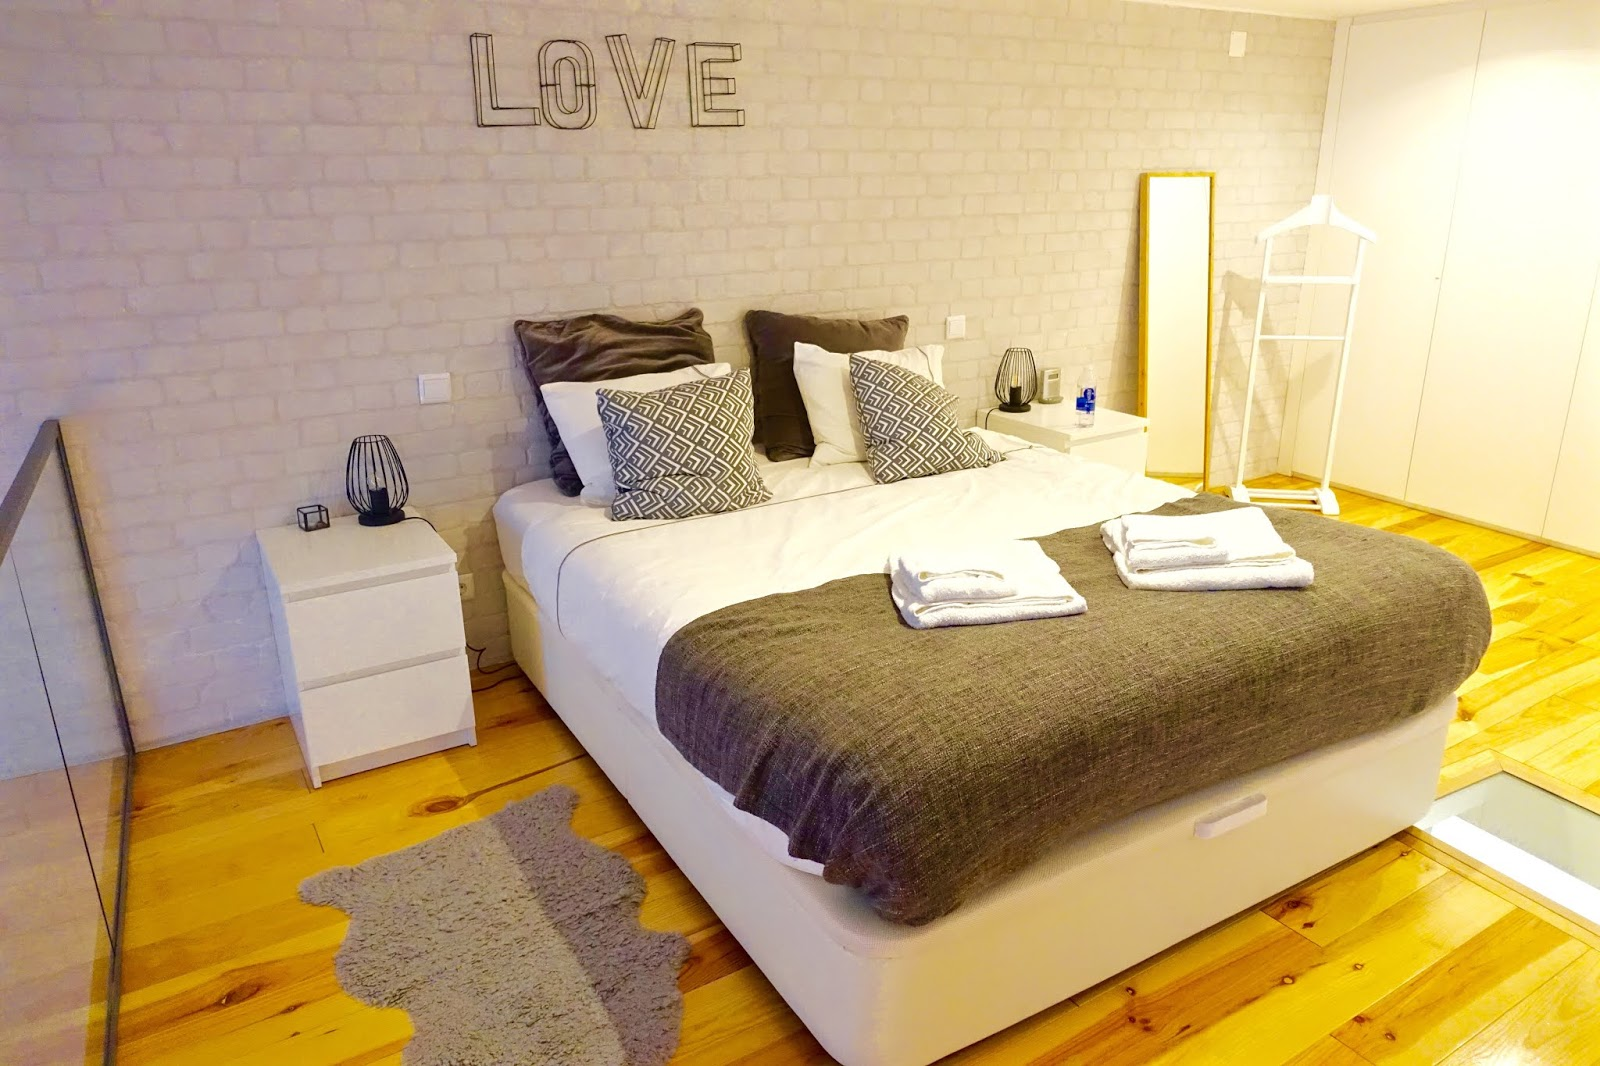 lisbon love apartments airbnb on bica elevator street